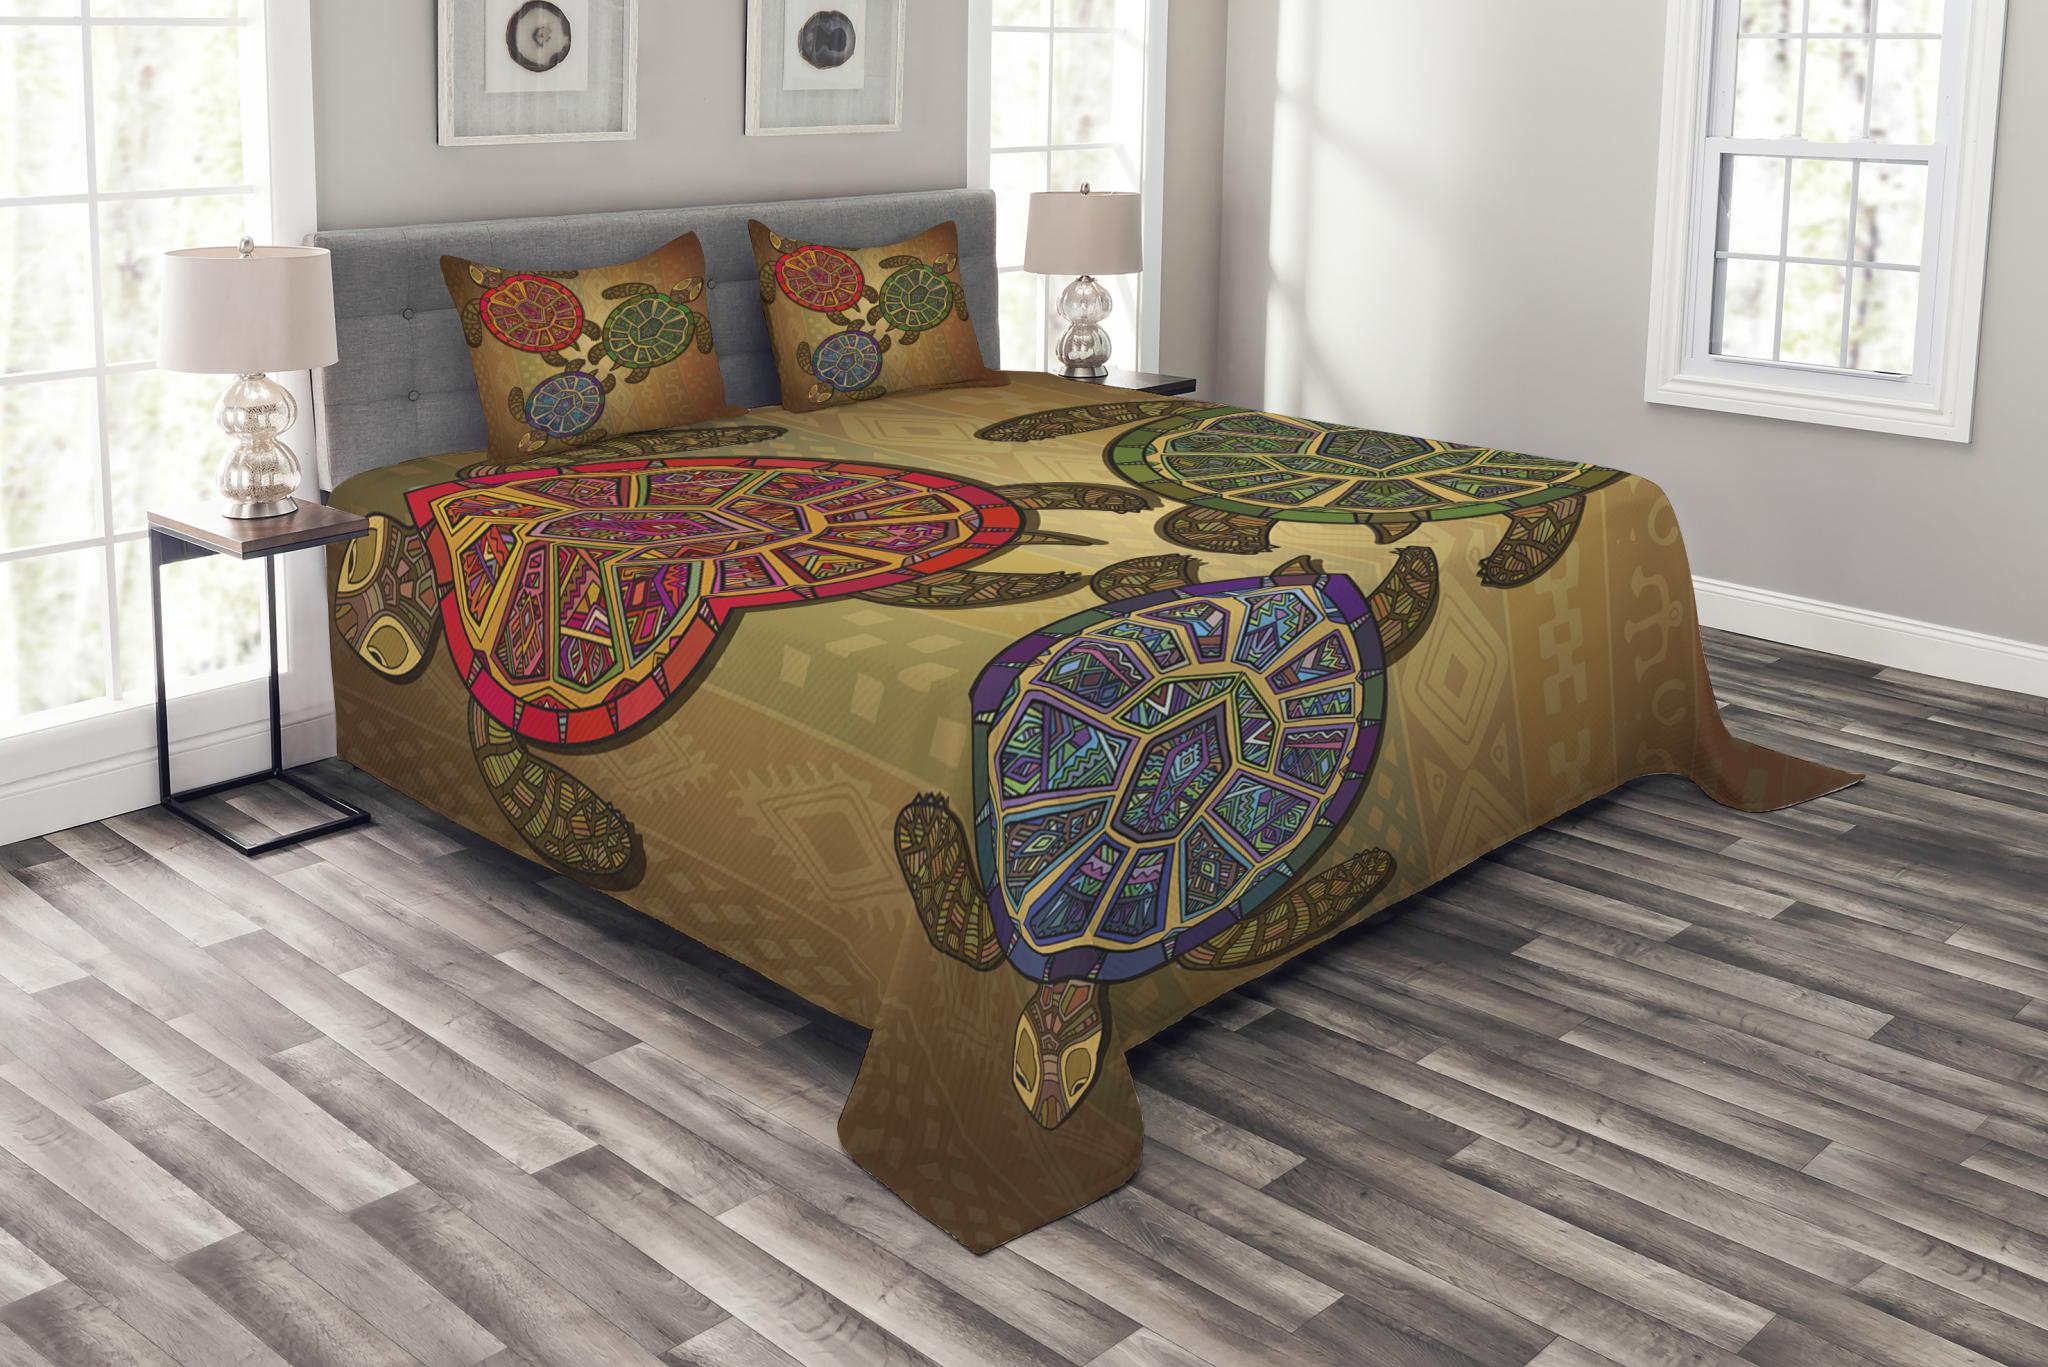 Three Turtles Ornamental Print Ethnic Quilted Bedspread /& Pillow Shams Set